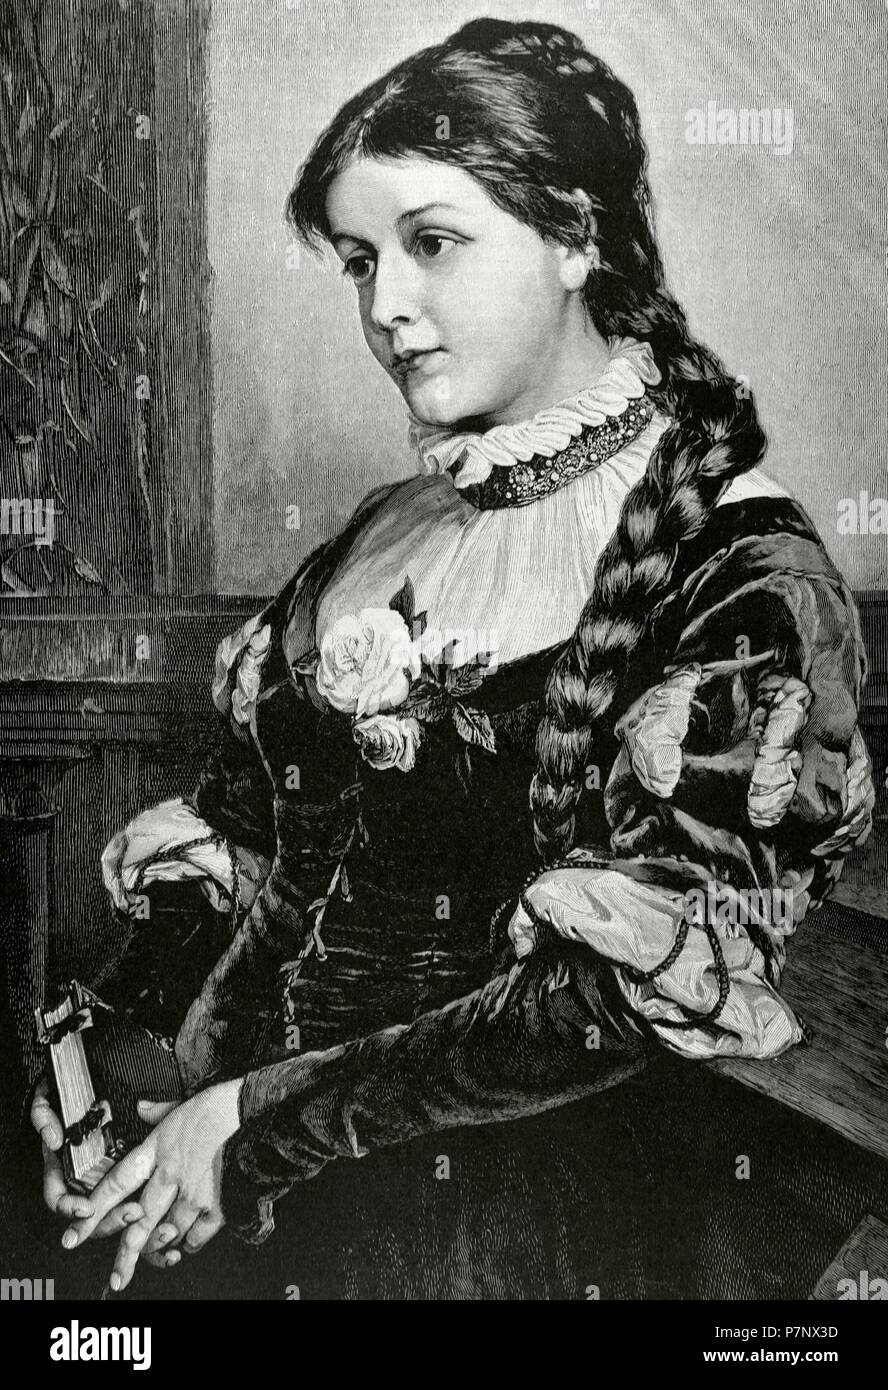 Faust. Tragic play by Johann Wolfgang von Goethe (1749-1832). Portrait of Margaret, character of the work and love of Faust. Engraving by Paar. The Illustration, 1884. - Stock Image